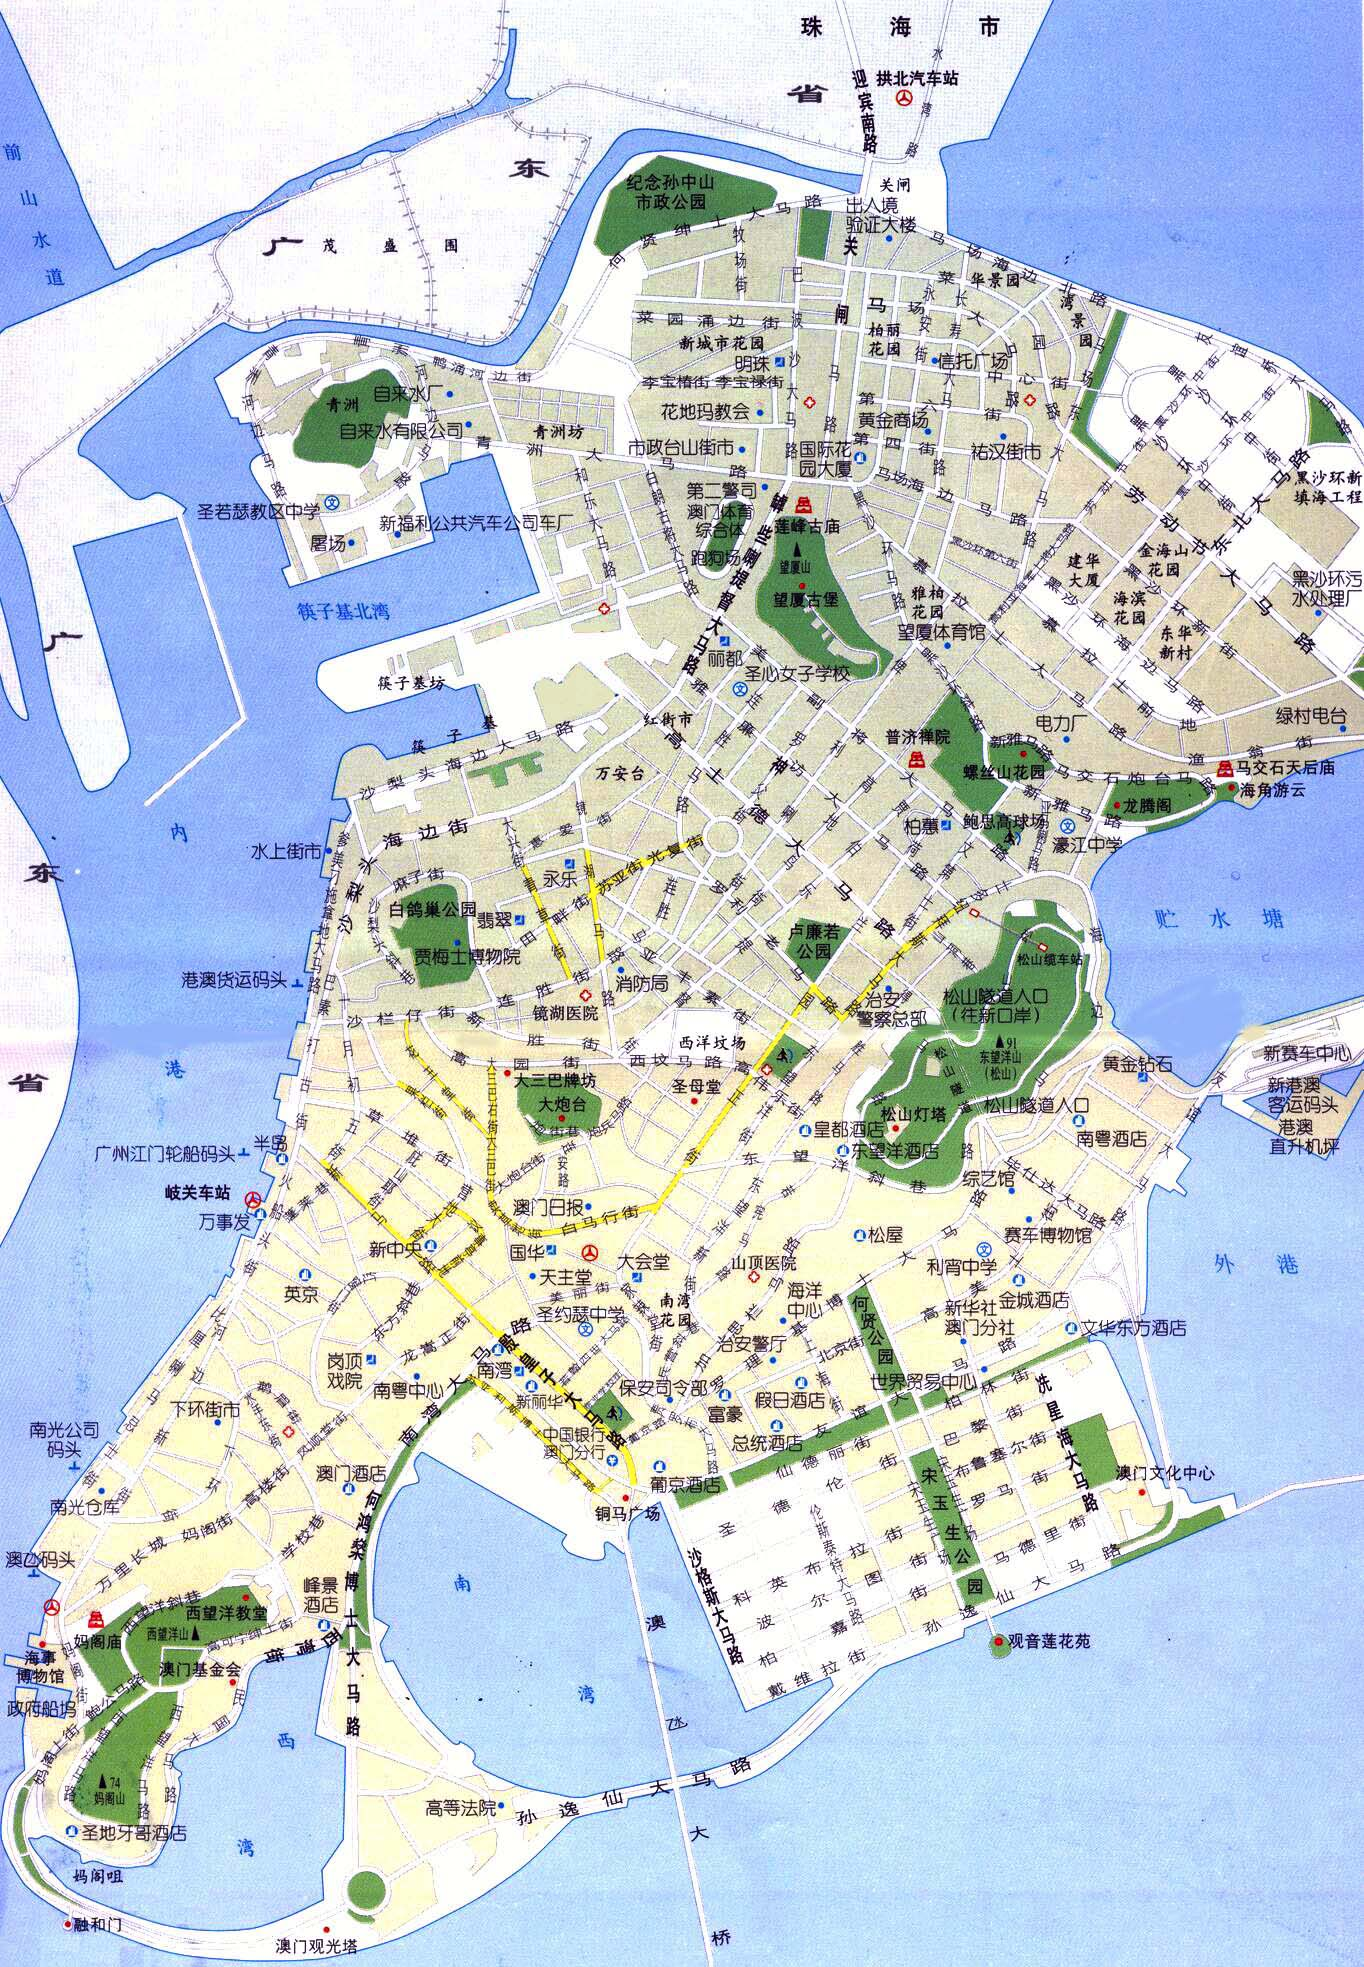 china road map in english Large Detailed Road Map Of Macau In Chinese Macau Large Detailed china road map in english